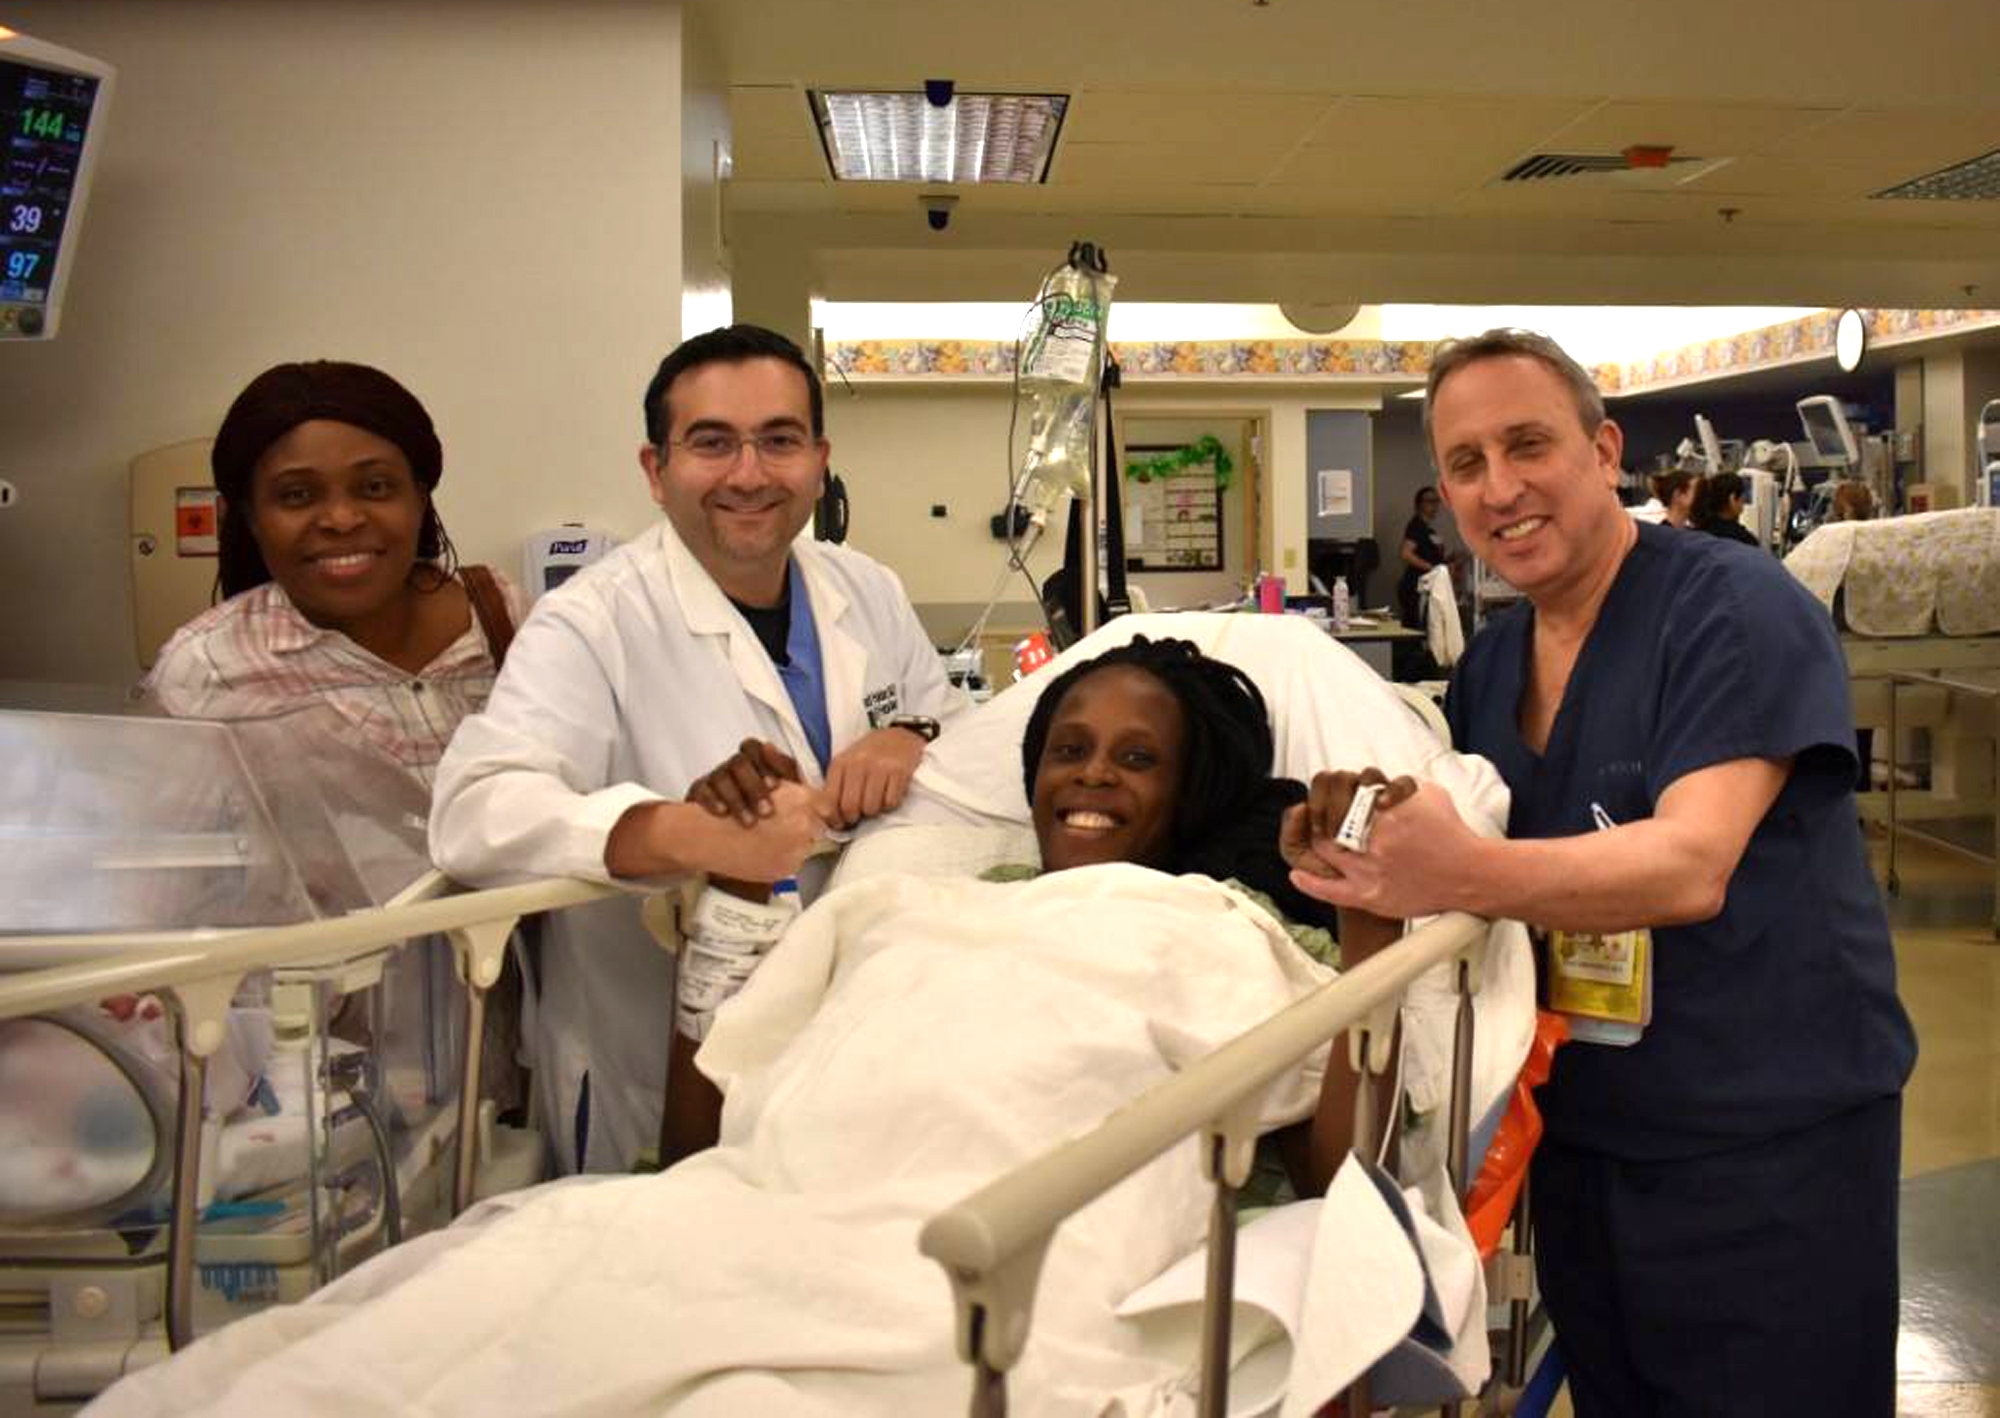 Baby Boom! Houston Woman Gives Birth to 3 Sets of Twins in 9 Minutes: 'This Is Miraculous!'